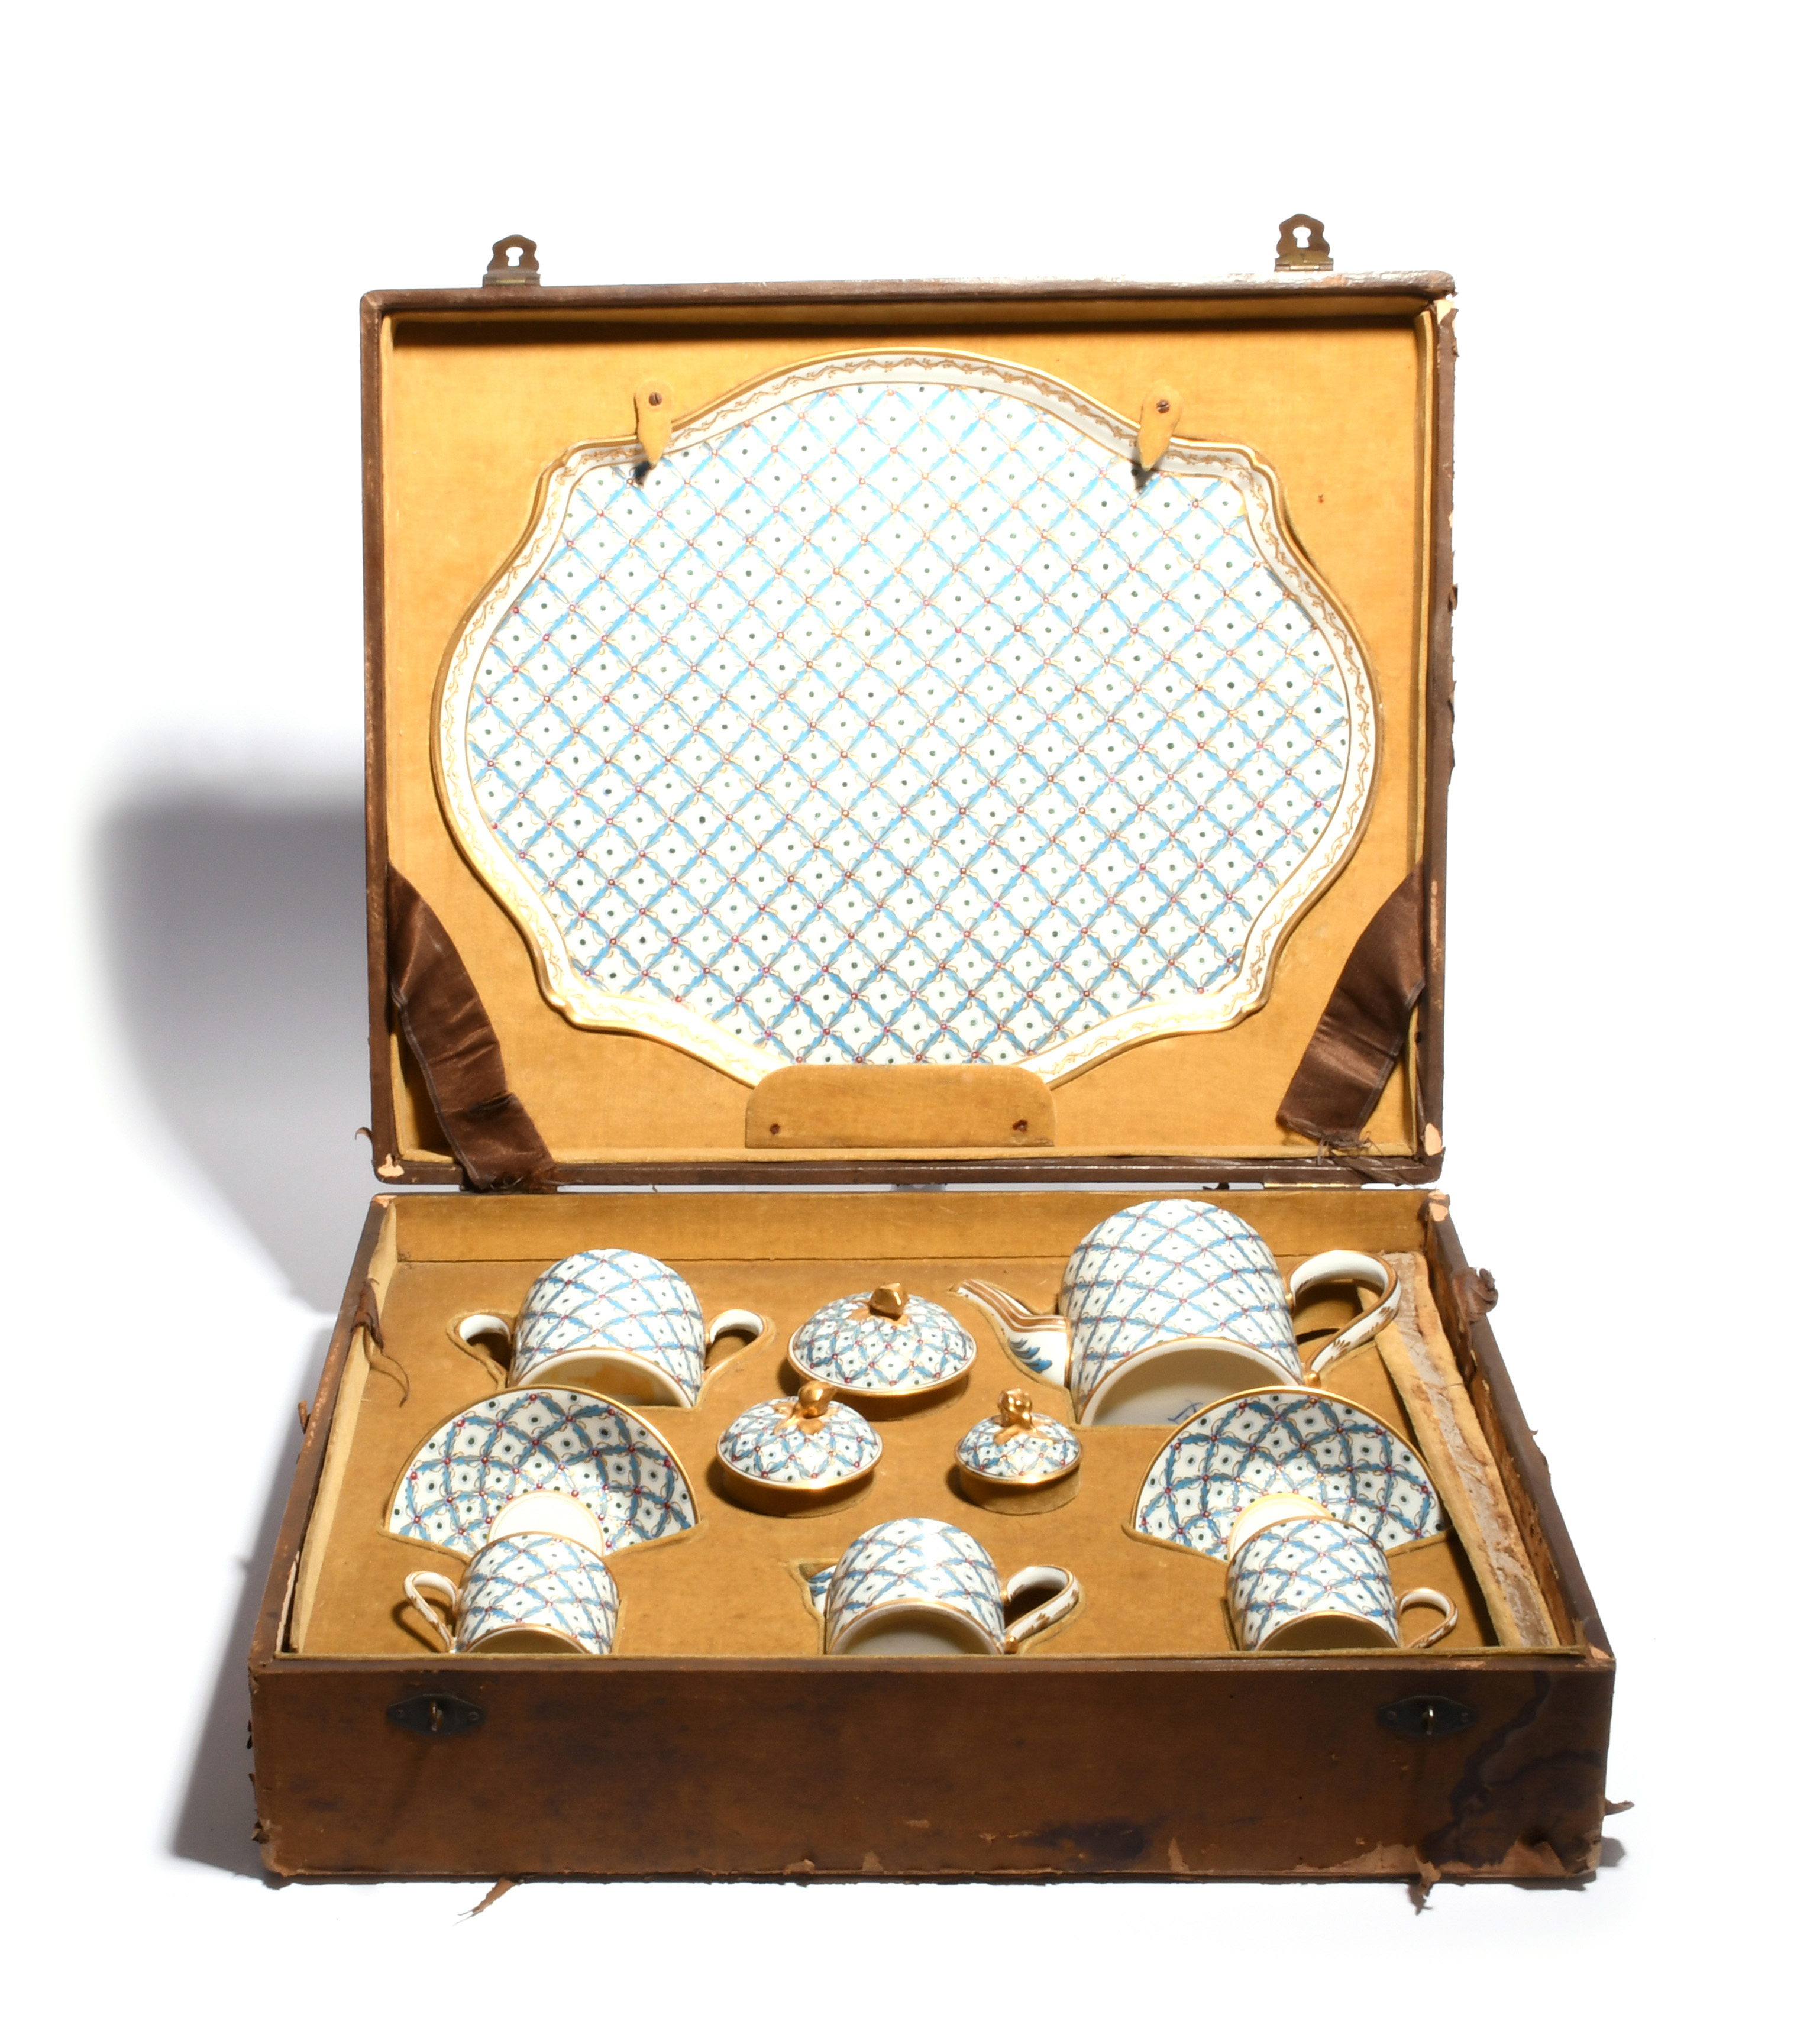 A Sèvres-style cabaret set 19th century, richly decorated with a trellis leaf design in turquoise,